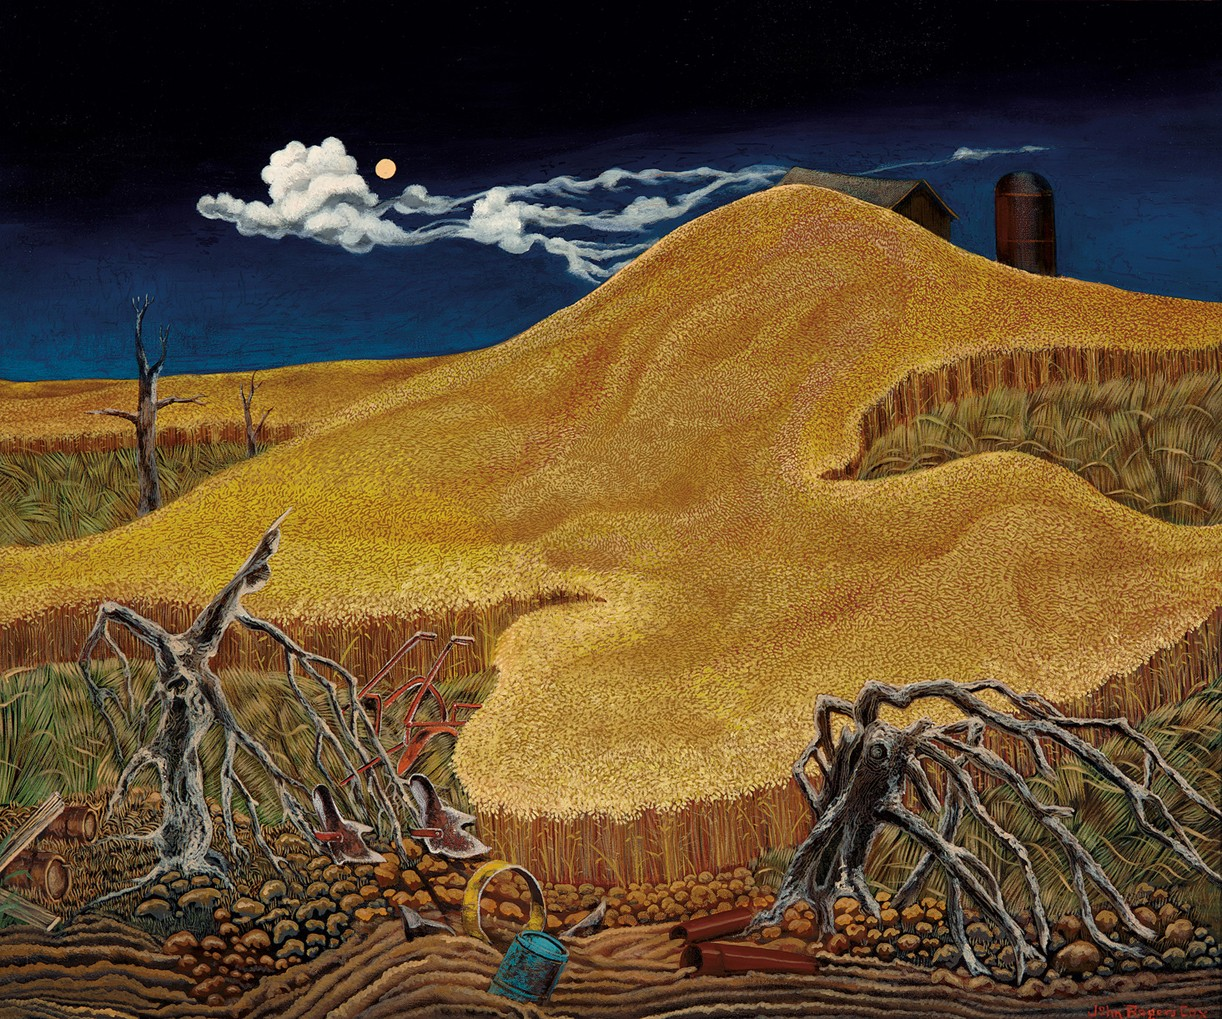 This work by John Rogers Cox depicts a field under a night sky